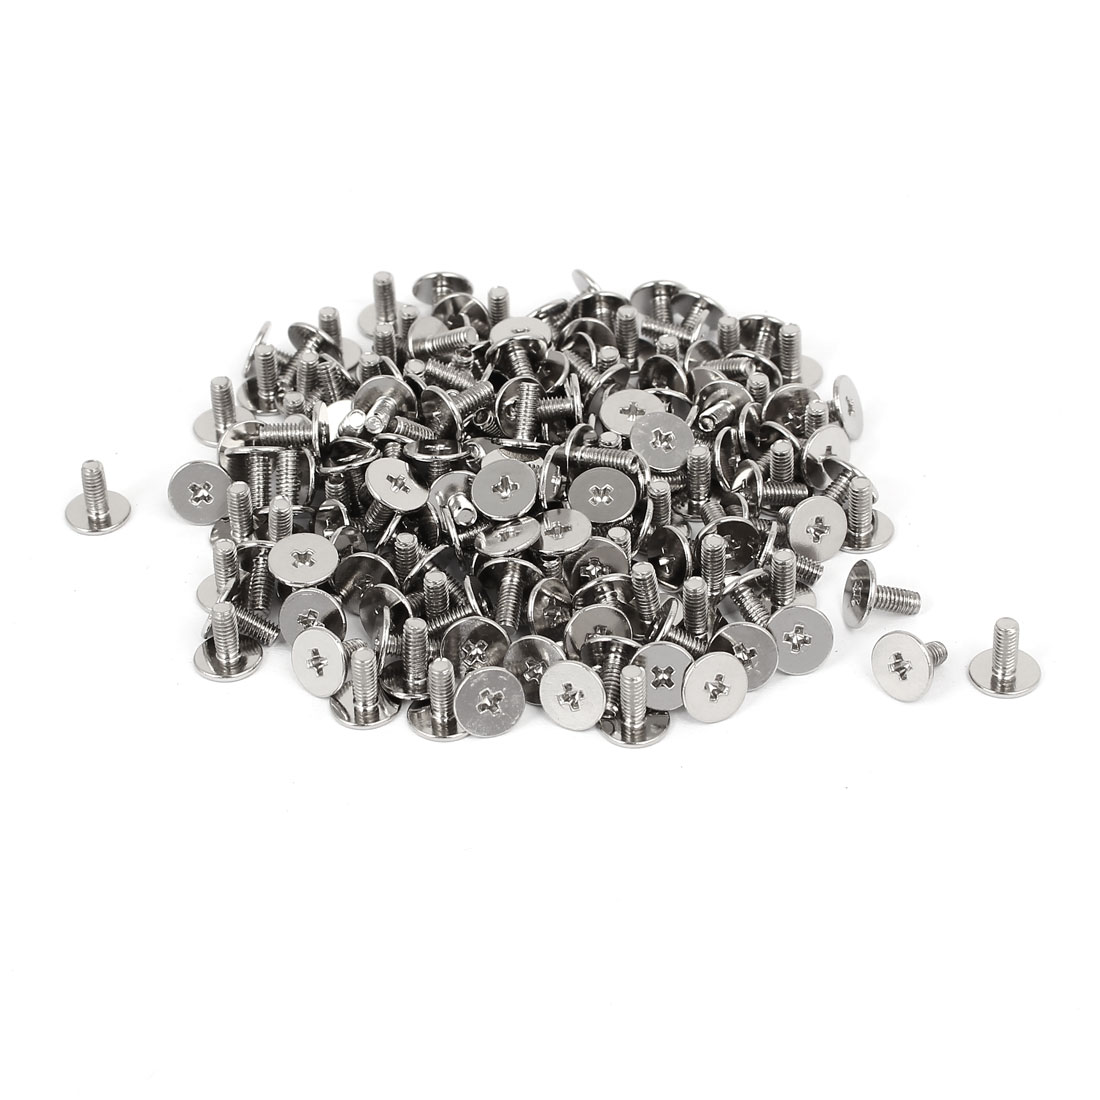 CM2.5x6mm Nickel Plated Phillips Laptop Computer Repair Screw Silver Tone 200pcs